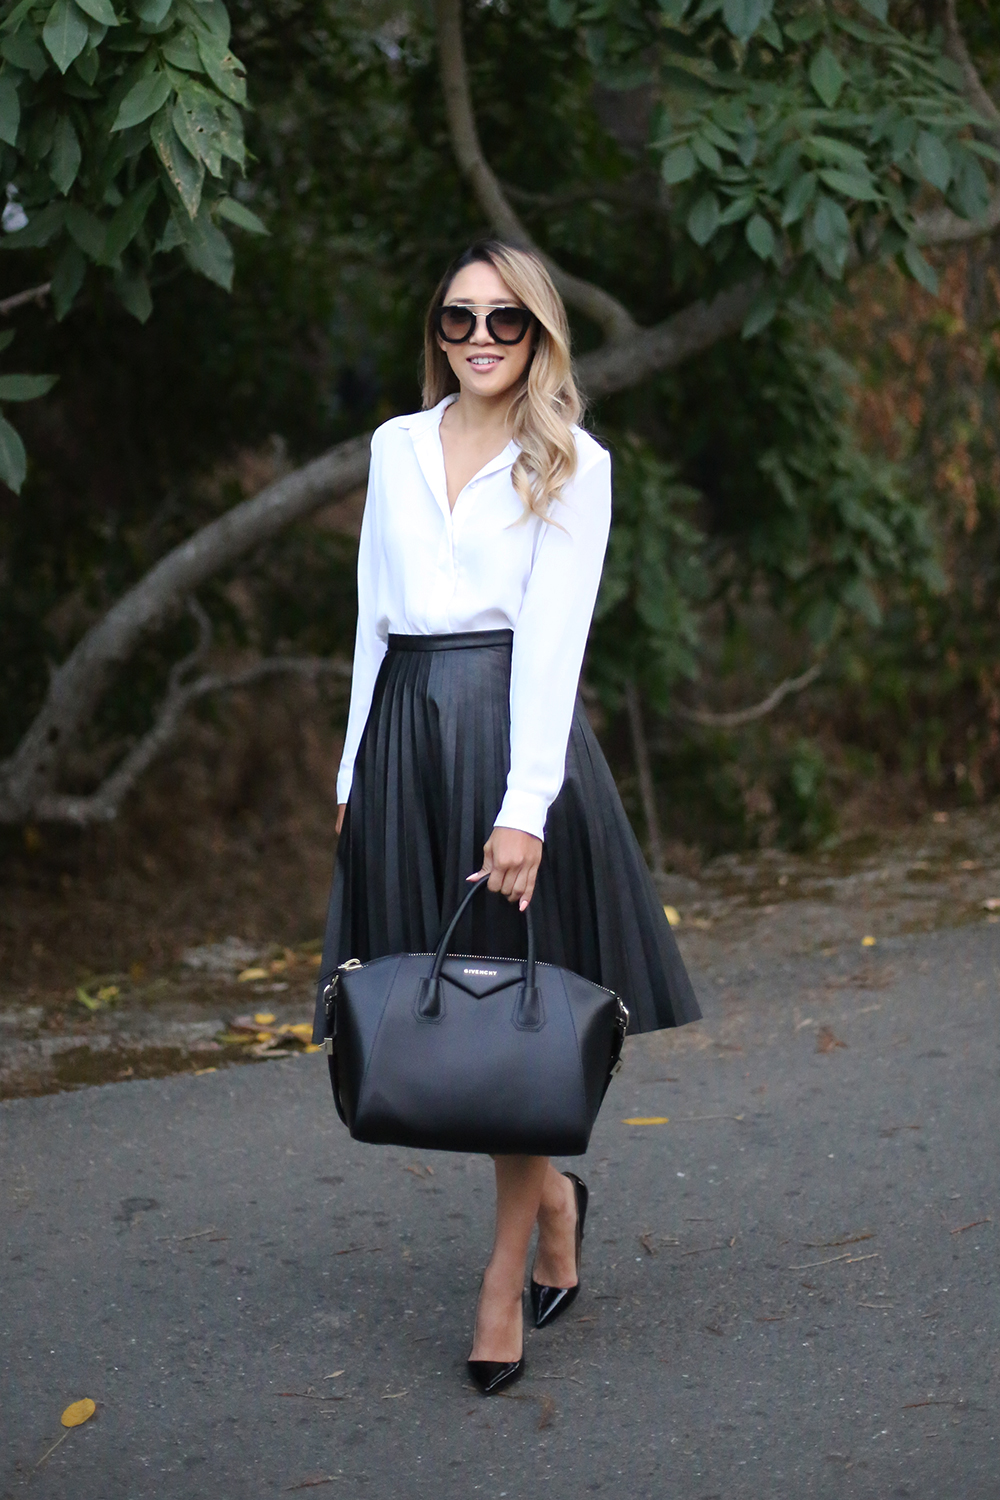 The Pleated Leather Skirt - Beyond Basic